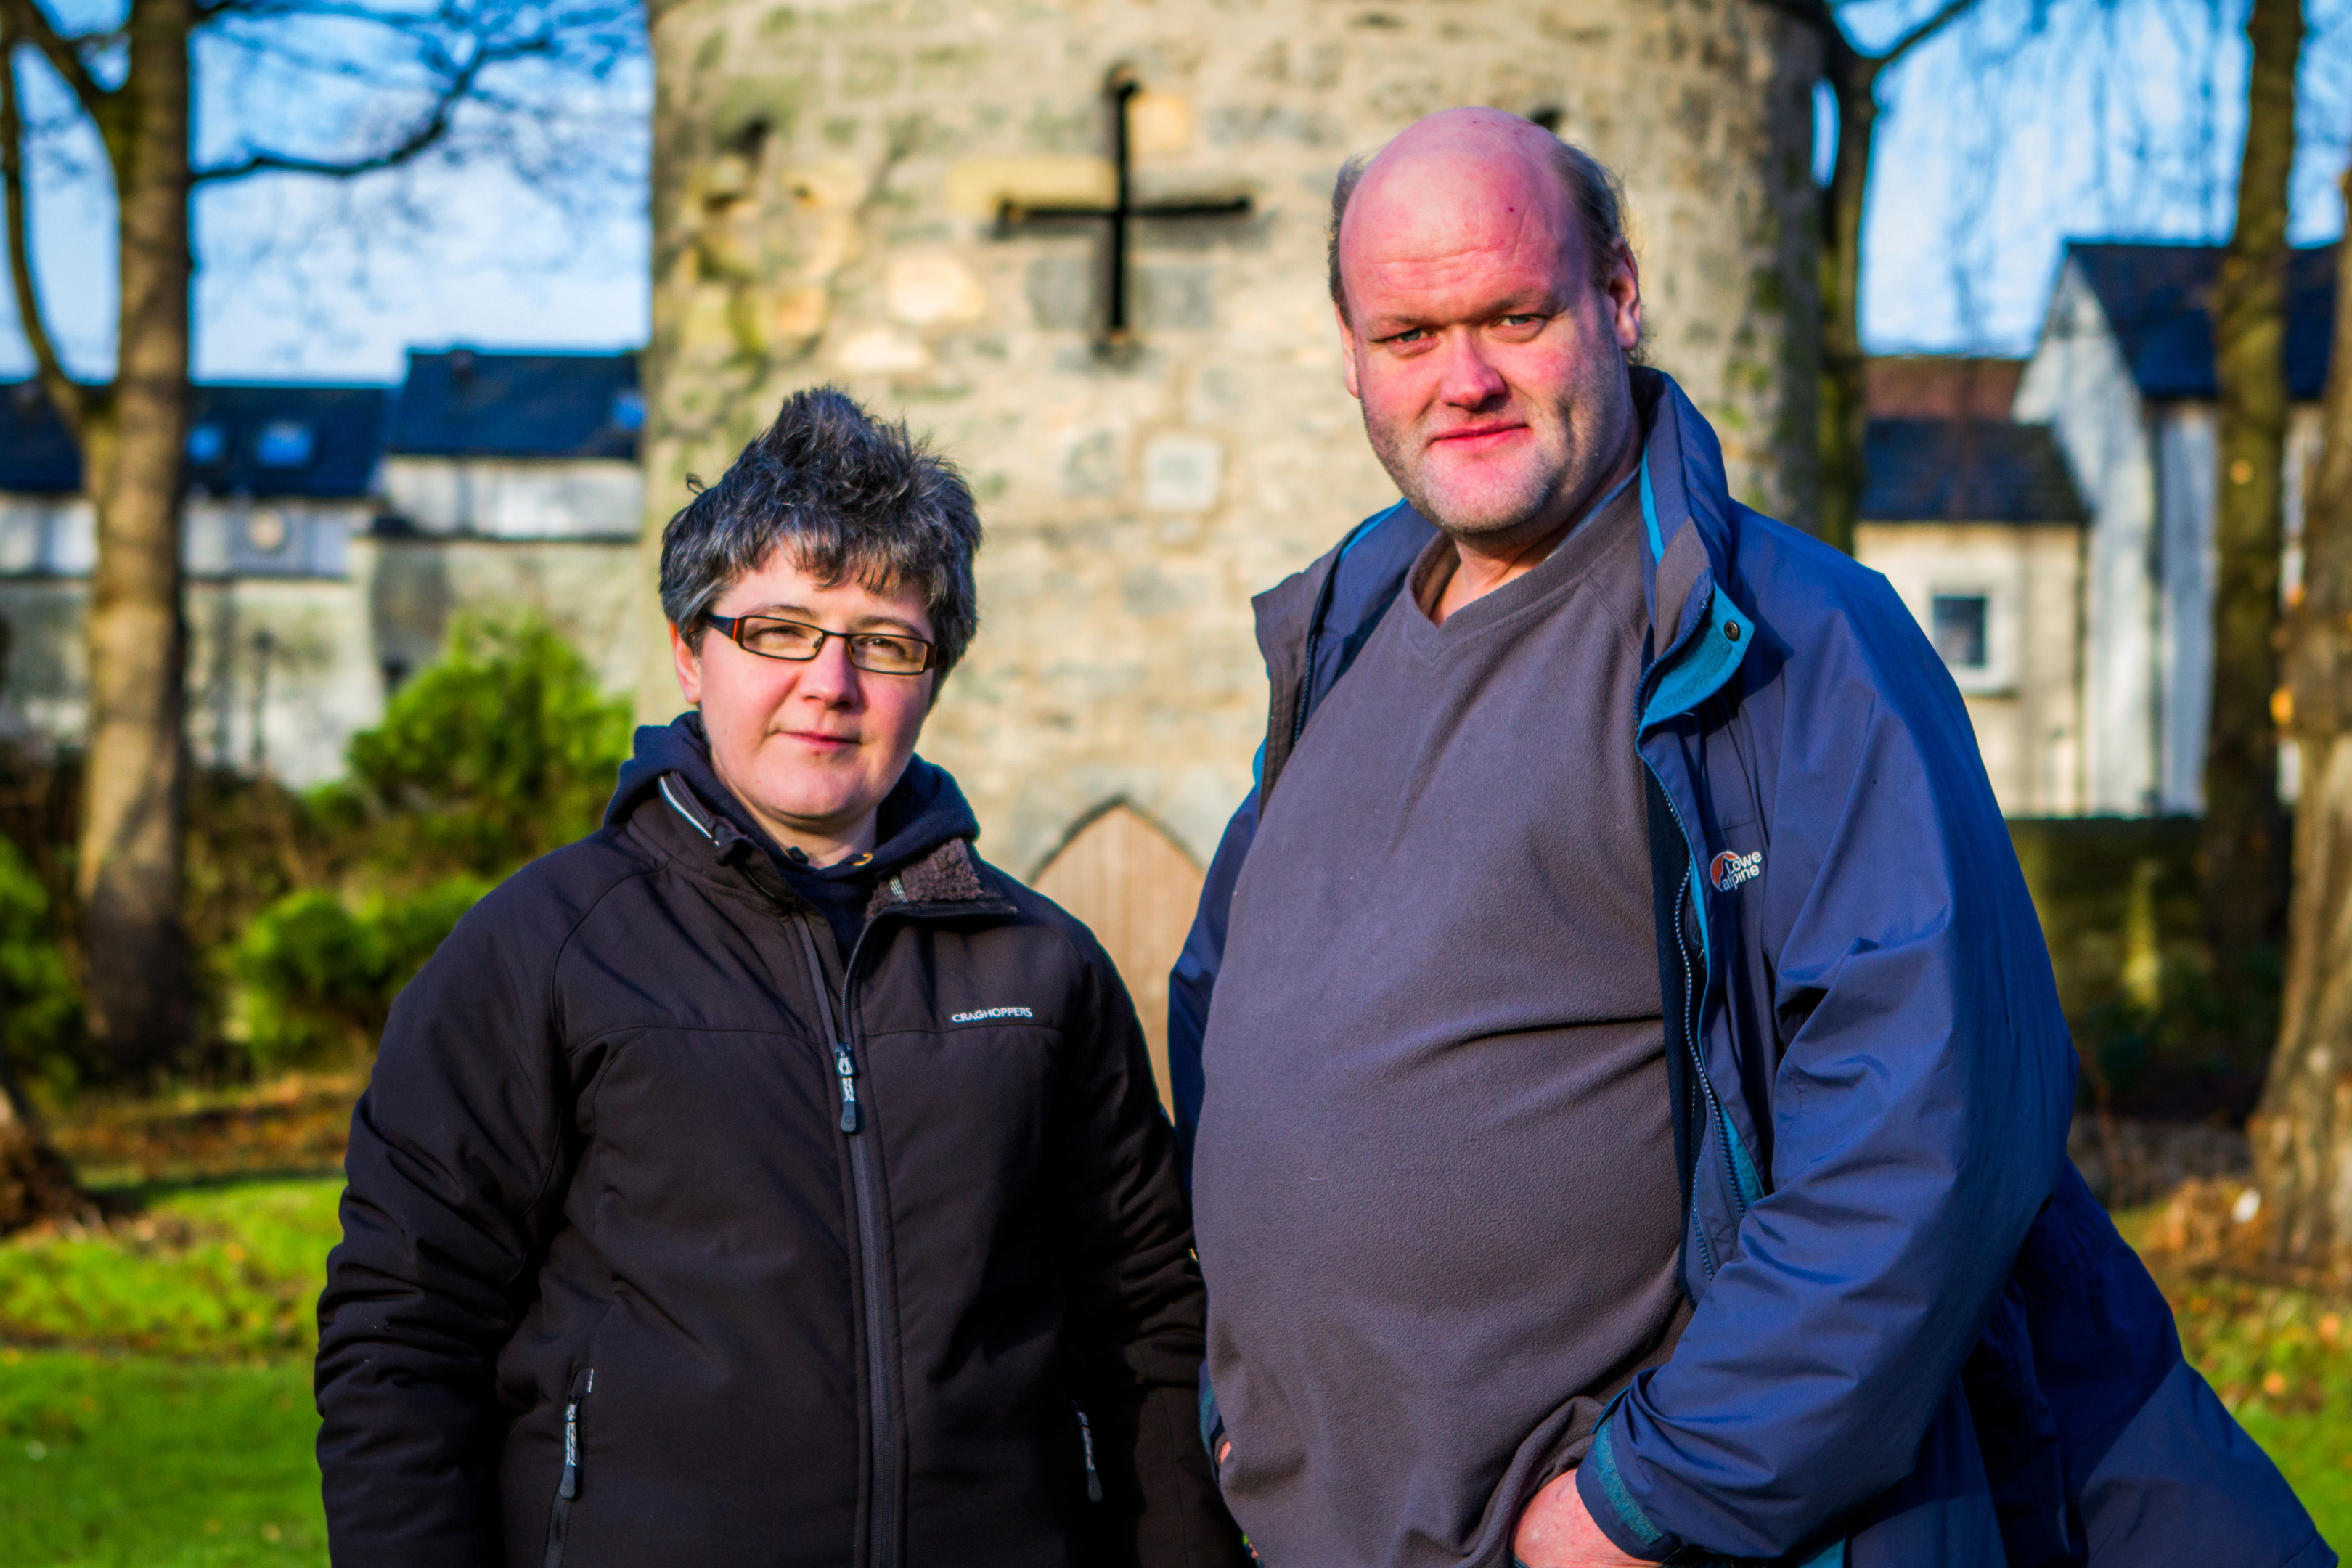 Picture of Susan Cord and husband James Bissett to accompany story about them being ordained as ministers in the Presbytery of Ross.